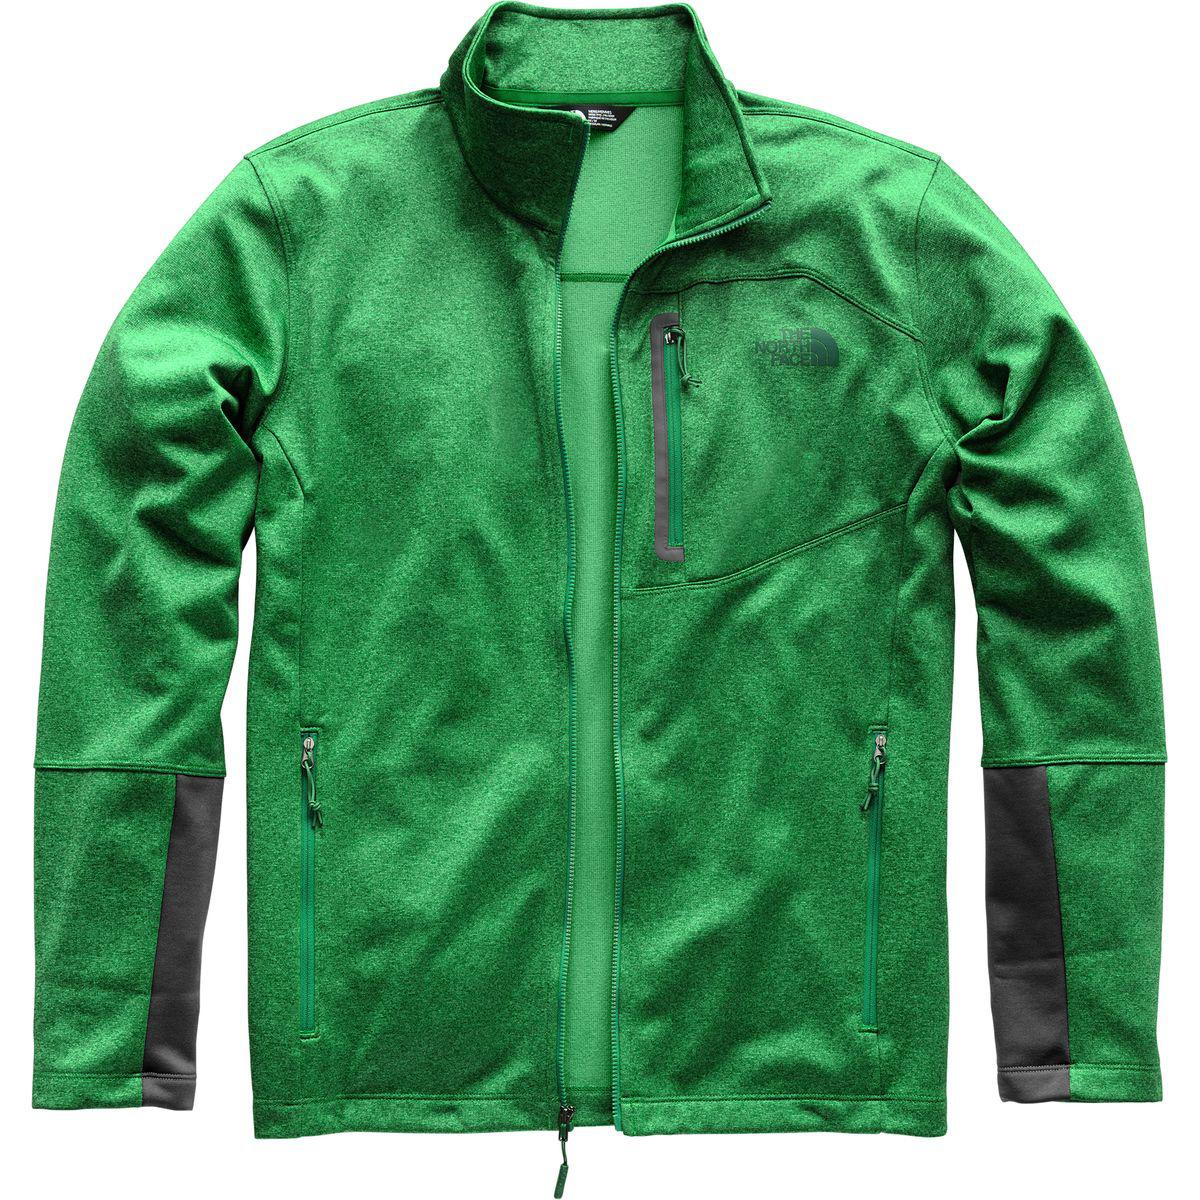 Lyst - The North Face Canyonlands Fleece Jacket in Green for Men b9c49a427